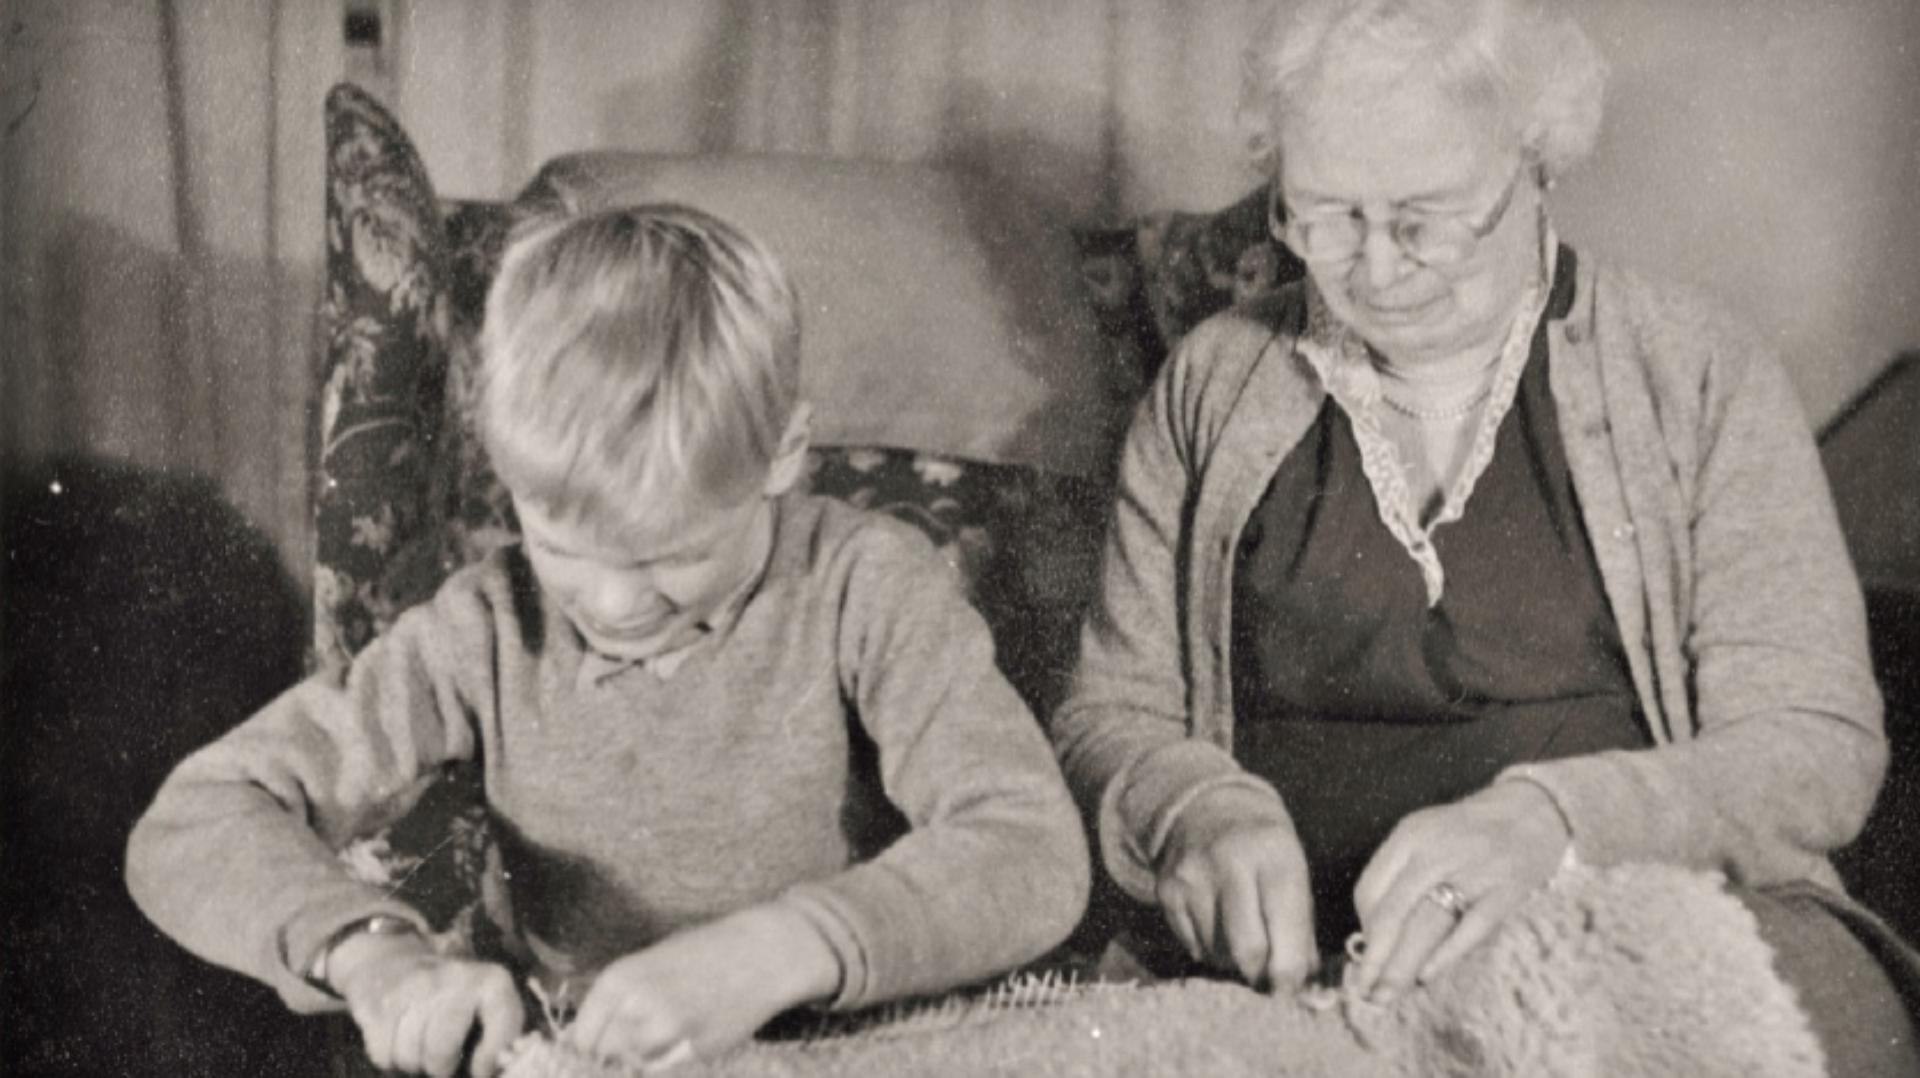 James Dyson sitting next to his grandmother